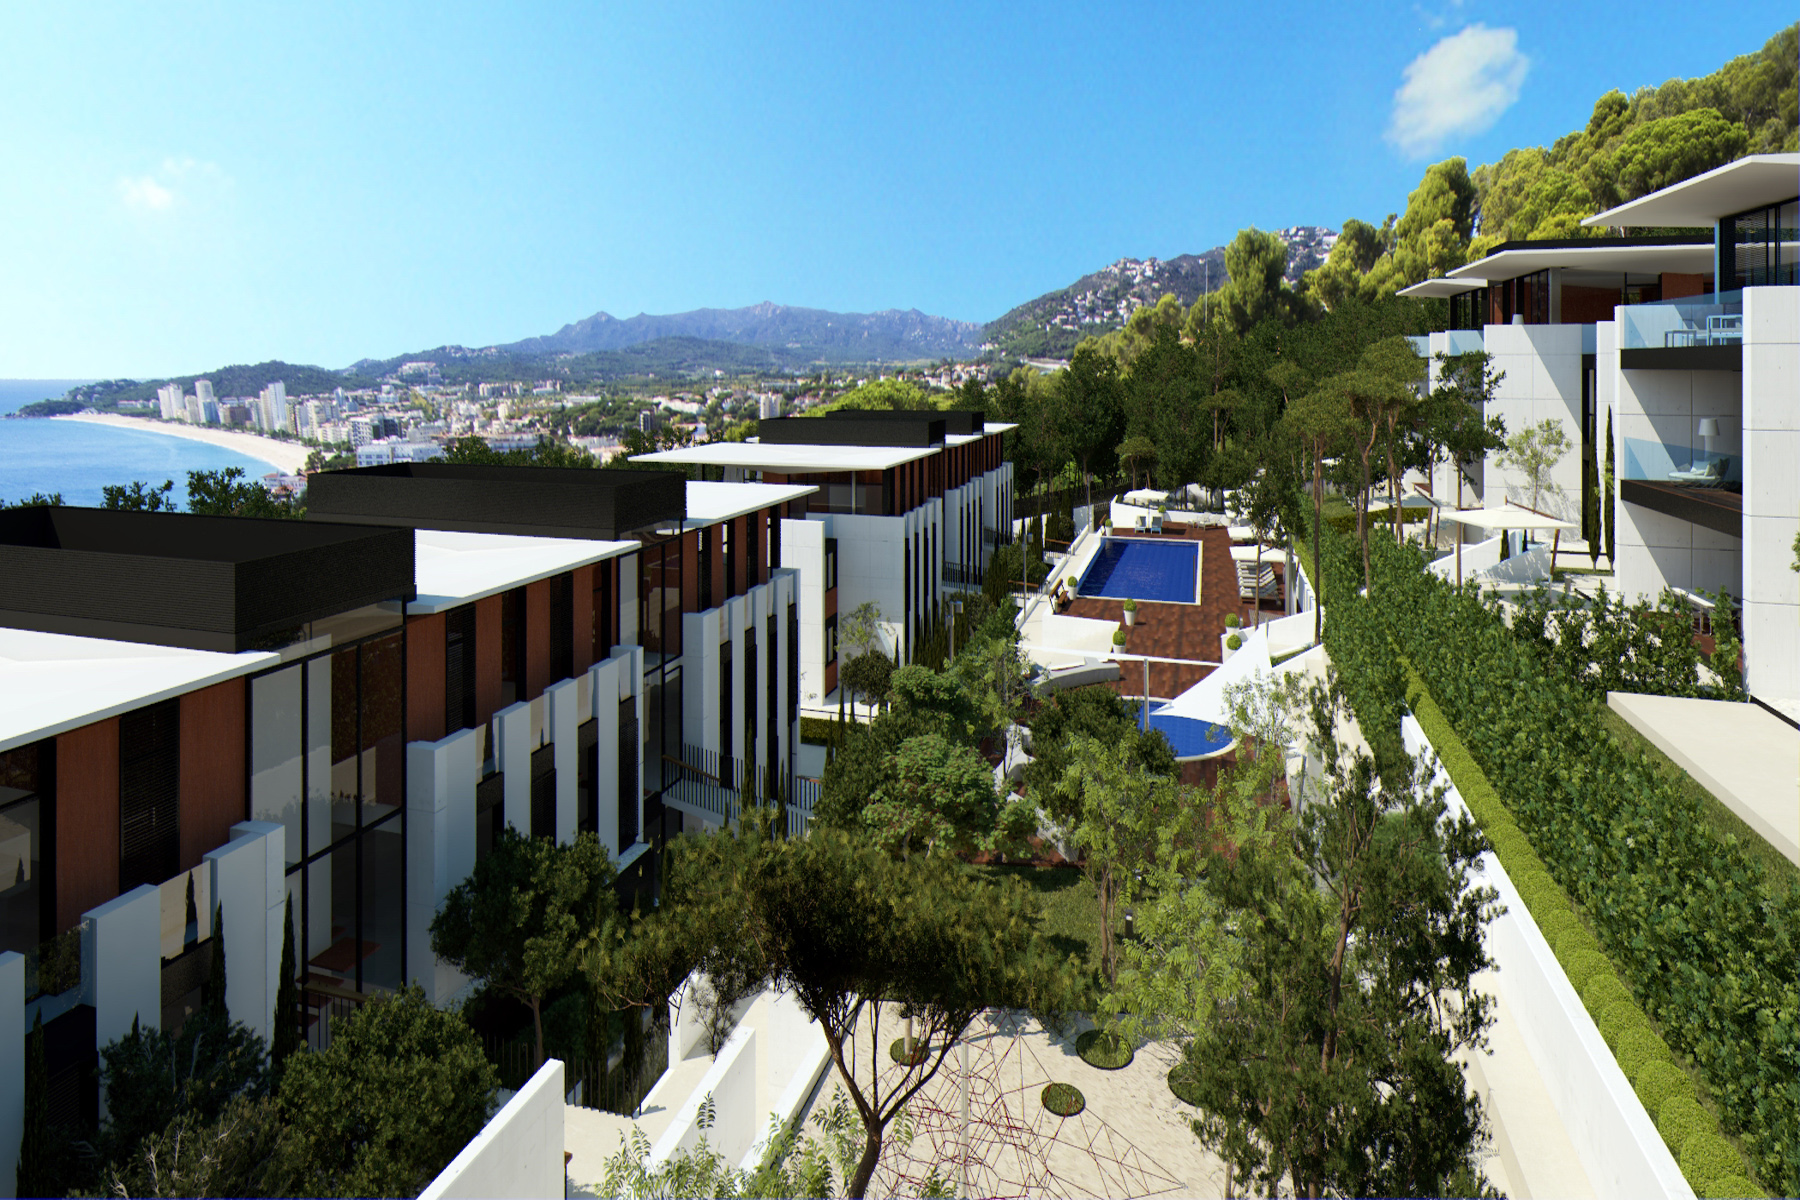 Apartment for Sale at Ground floor with private garden and sea view in a new exclusive development Playa De Aro, Costa Brava, 17250 Spain